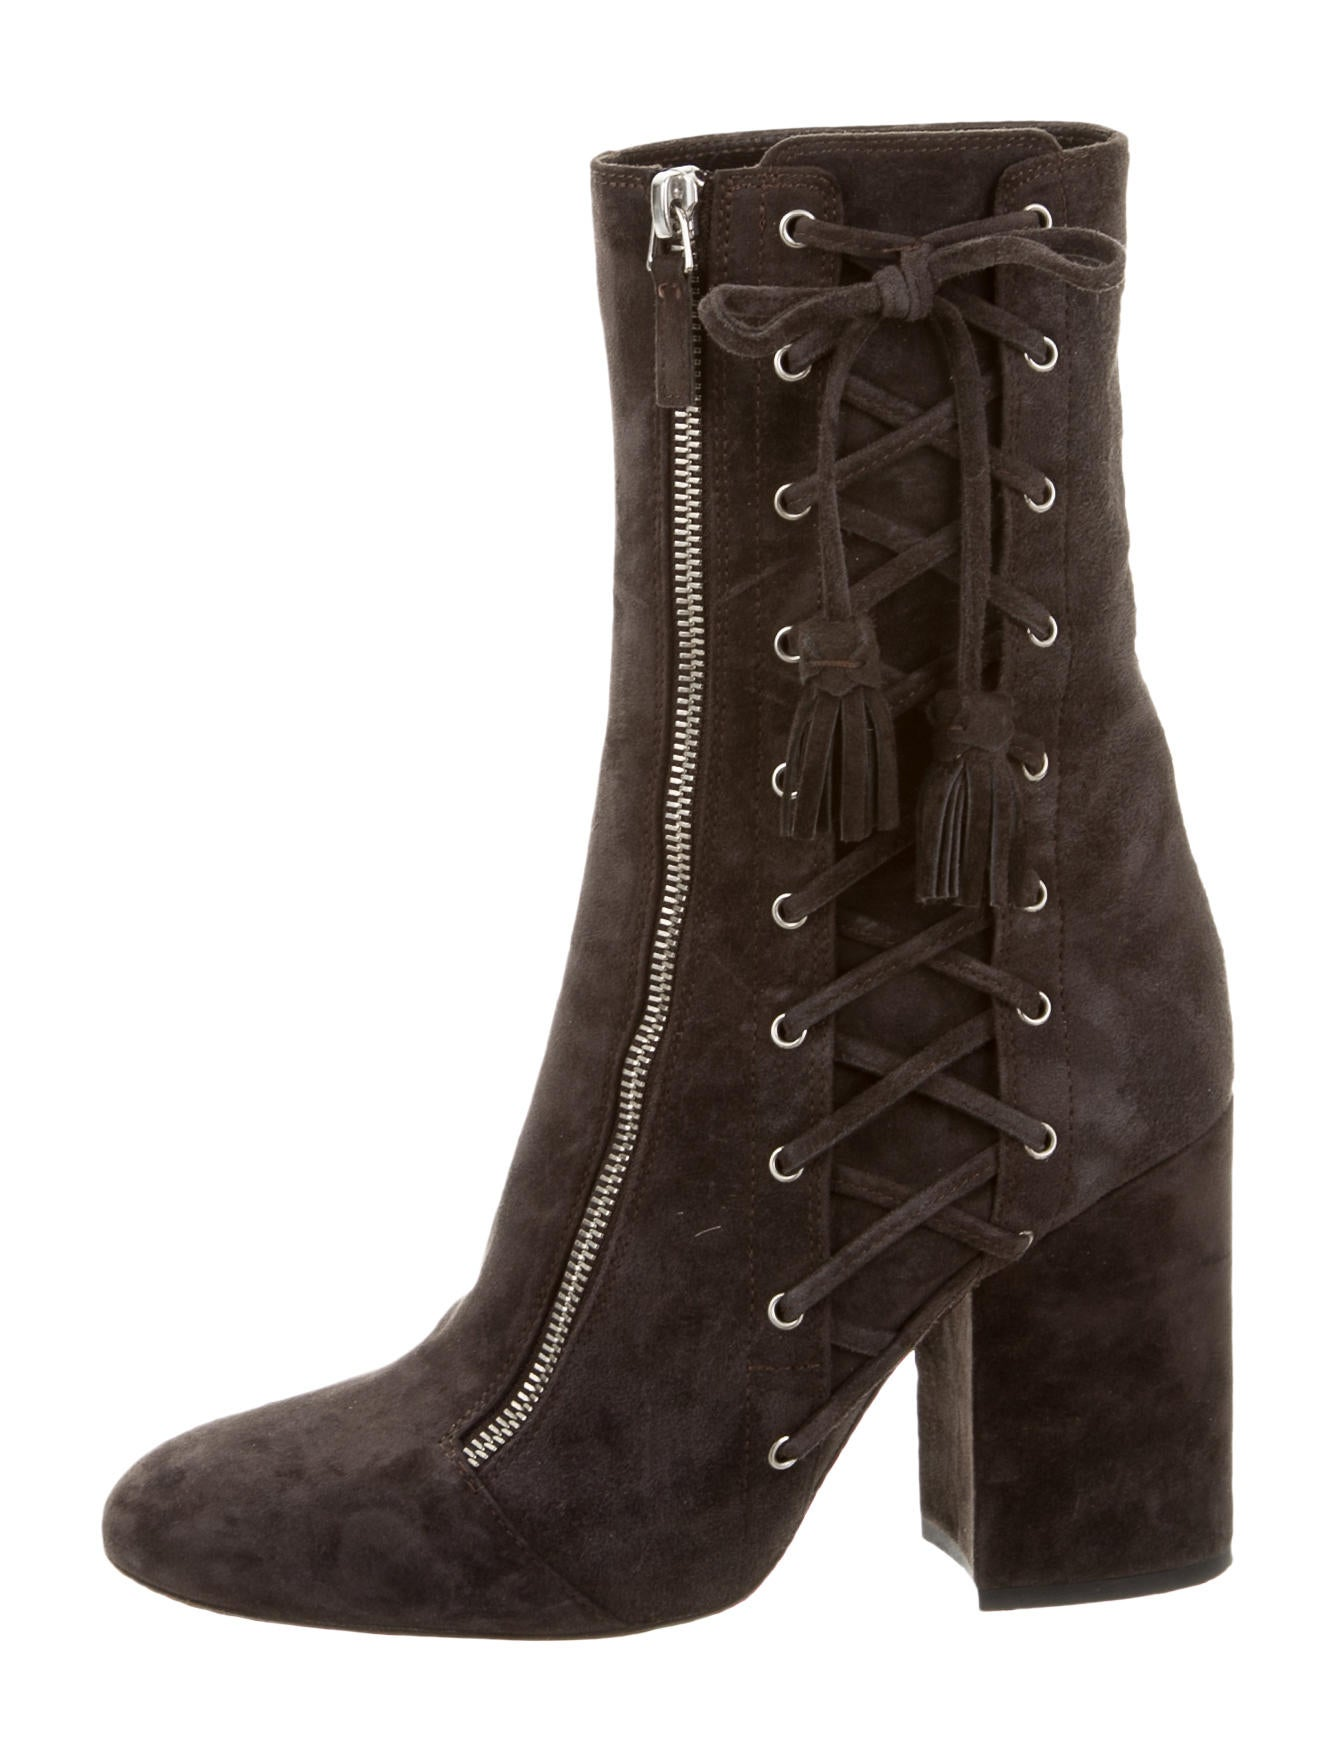 Free shipping on women's booties at vip7fps.tk Shop all types of ankle boots, chelsea boots, and short boots for women from the best brands including Steve Madden, Sam Edelman, Vince Camuto and more. Totally free shipping & returns.